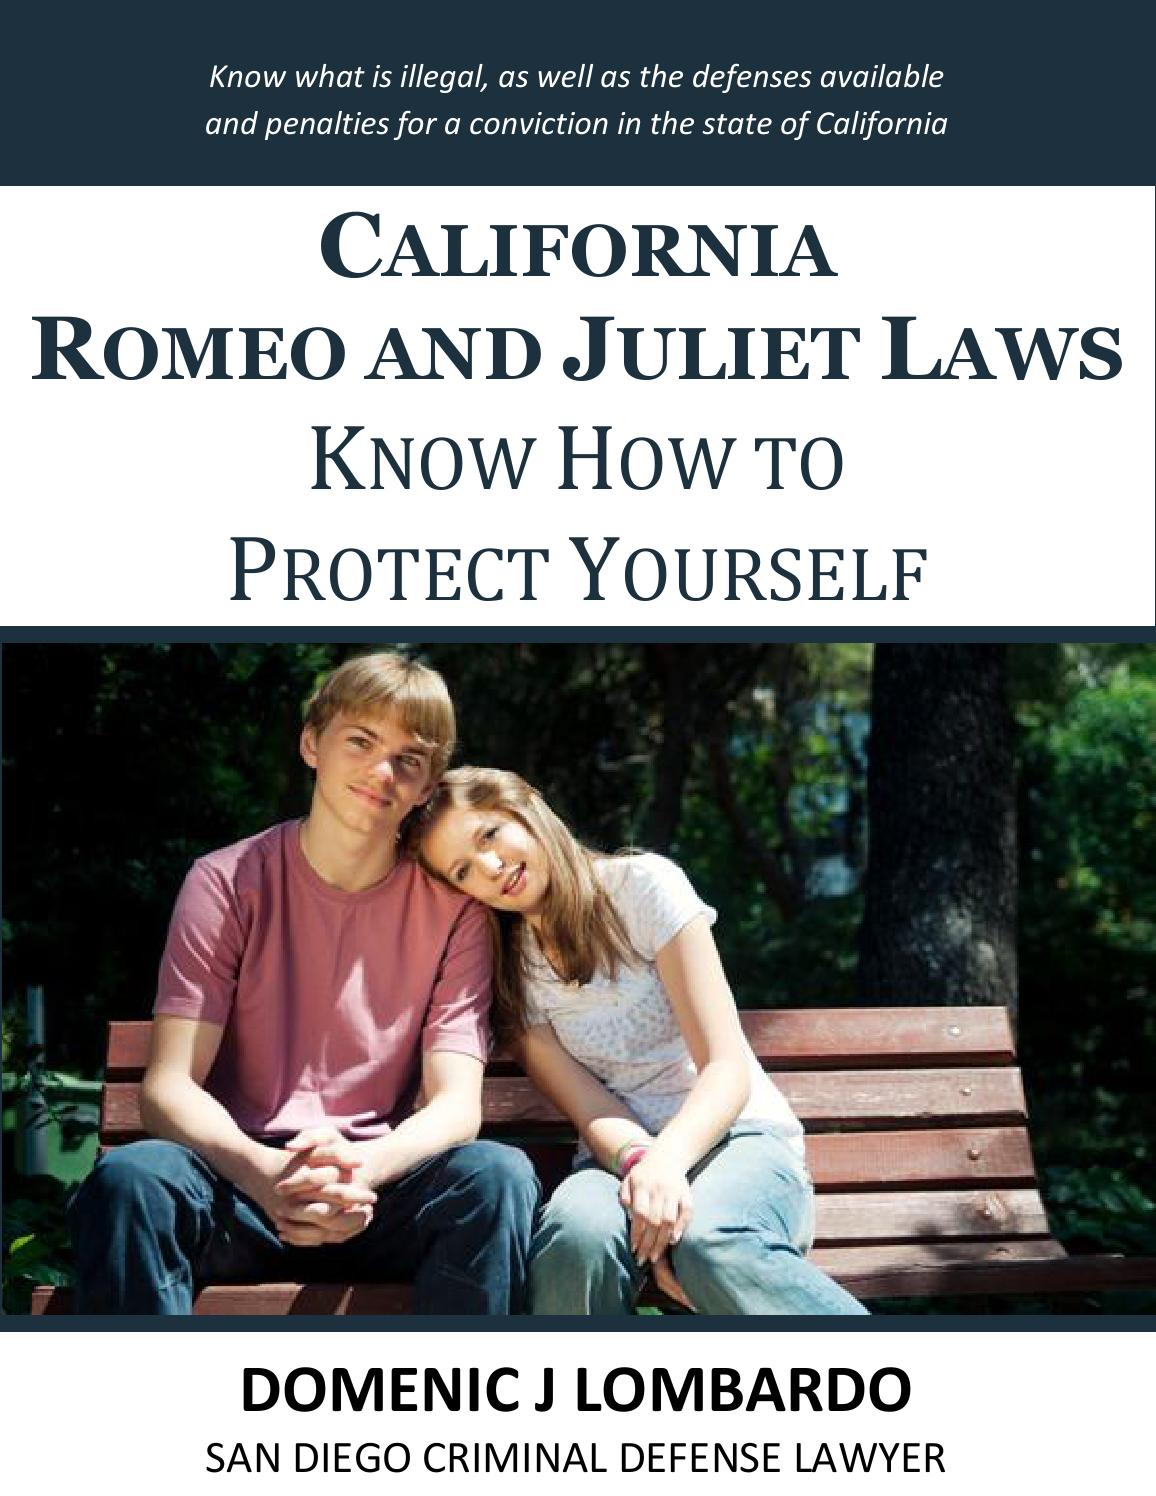 California romeo and juliet laws for dating